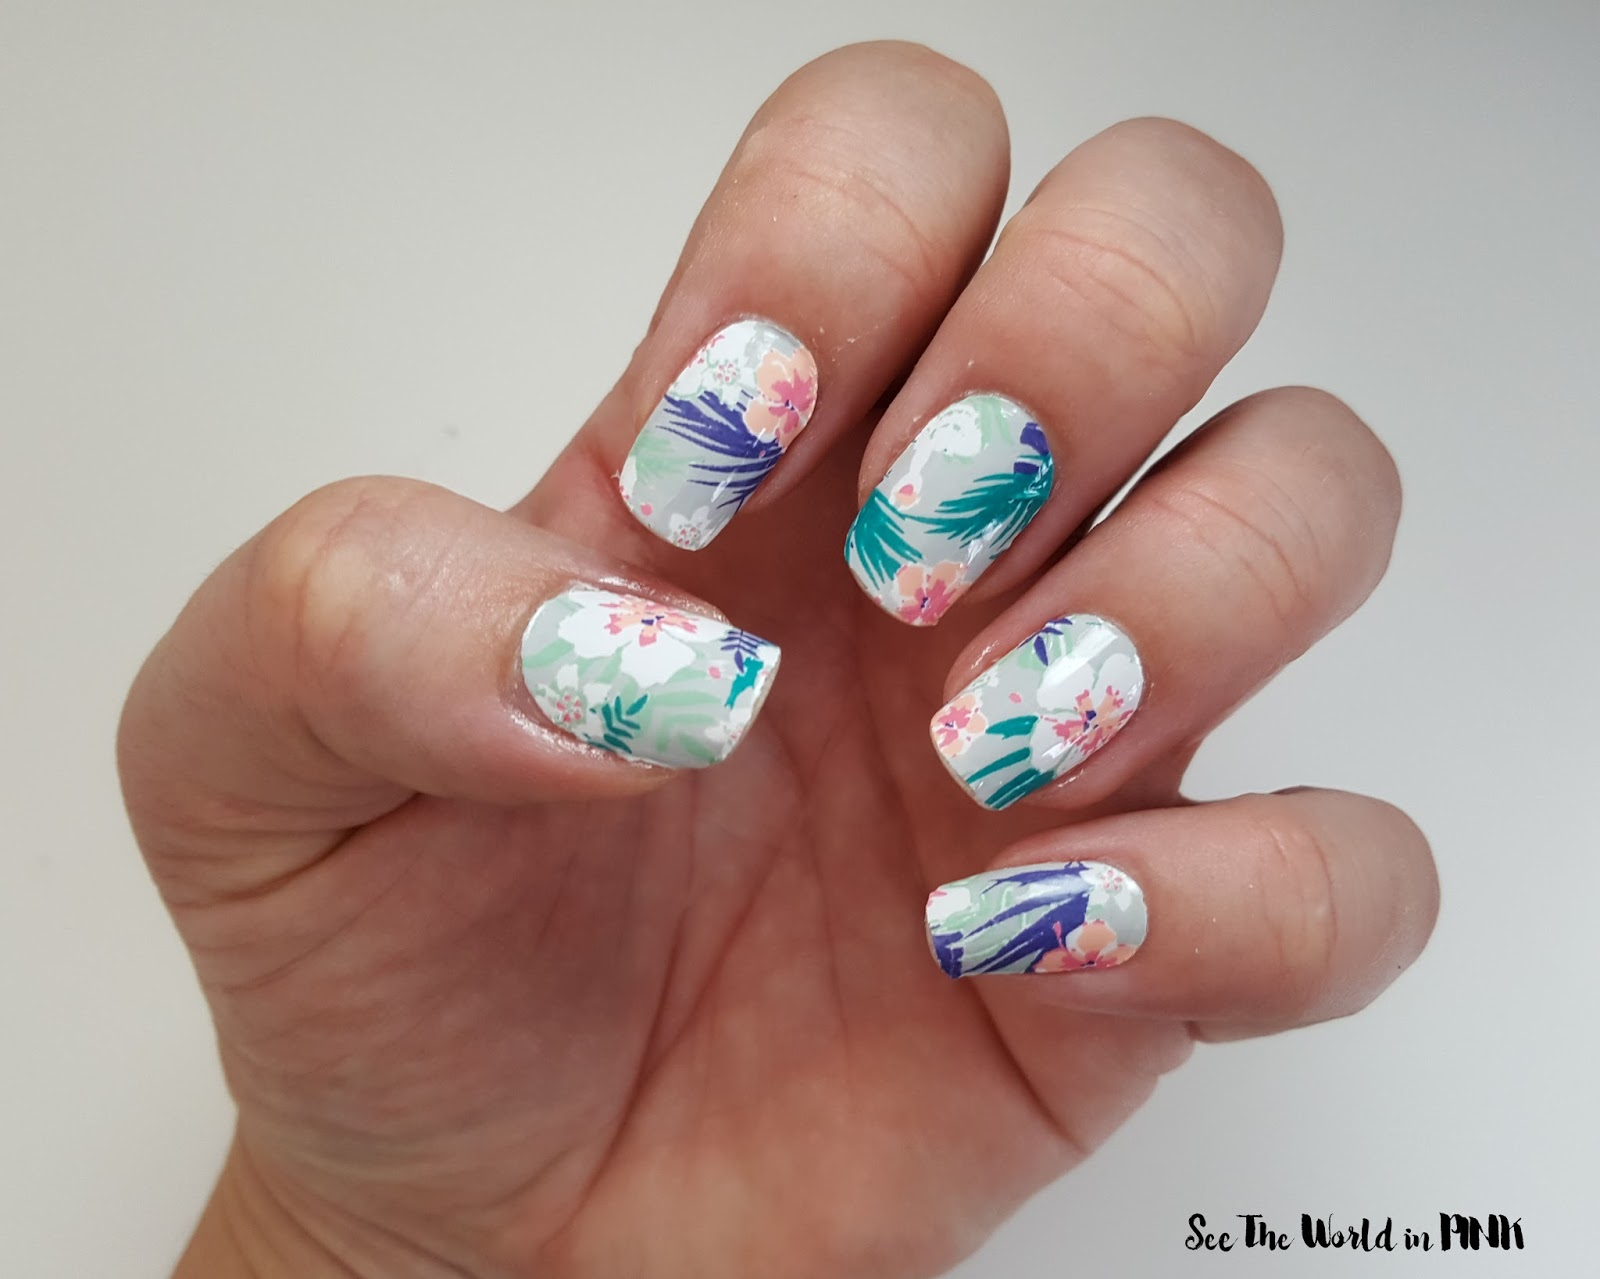 Manicure Tuesday - Scratch and NinaNailedIt Tropical Floral Wraps!